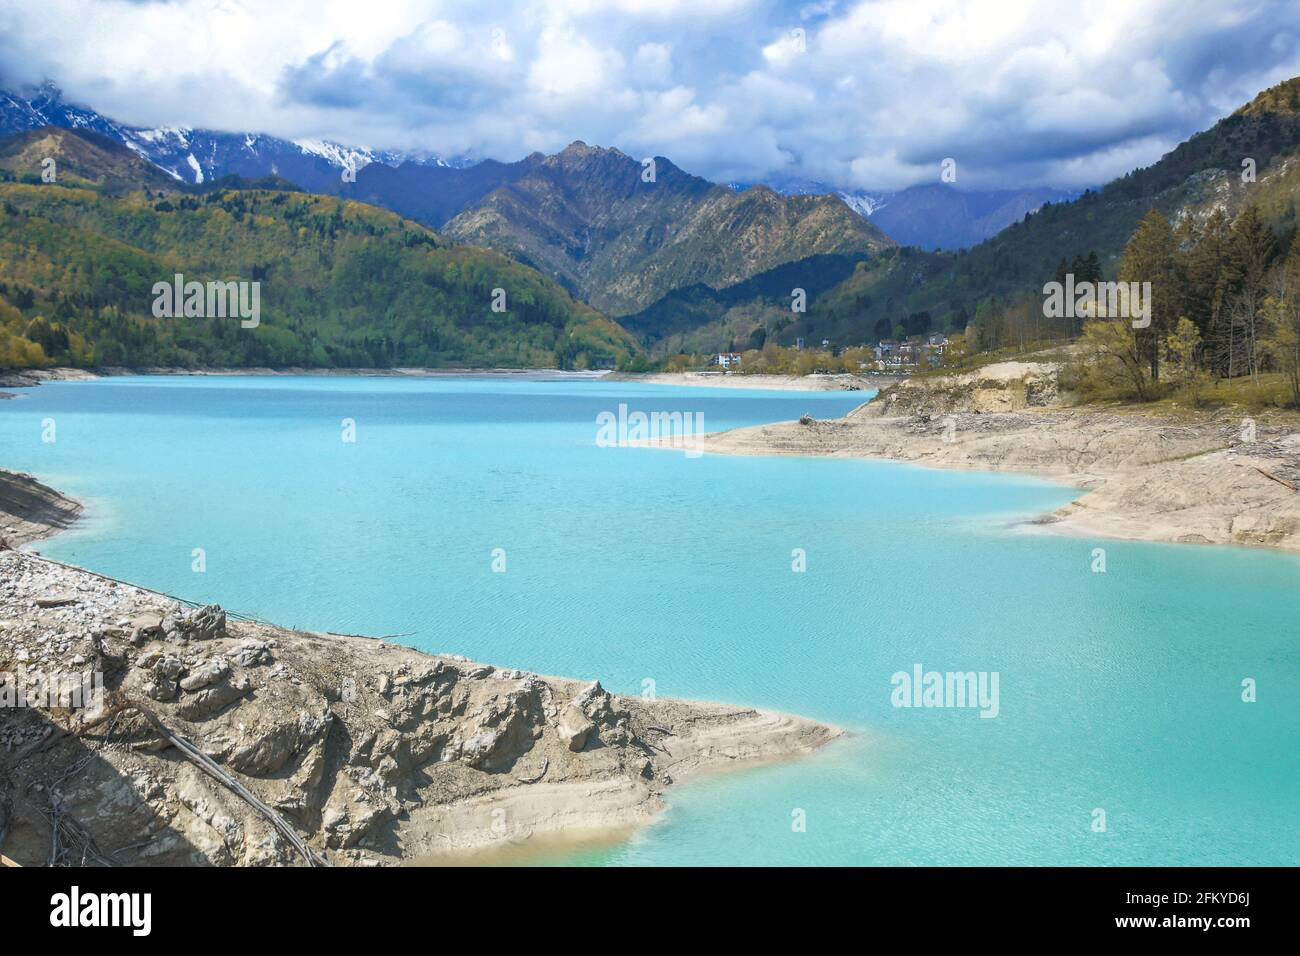 Barcis alpine lake with cloudy sky at Valcellina-Pordenone,Italy attractions on Dolomites Stock Photo